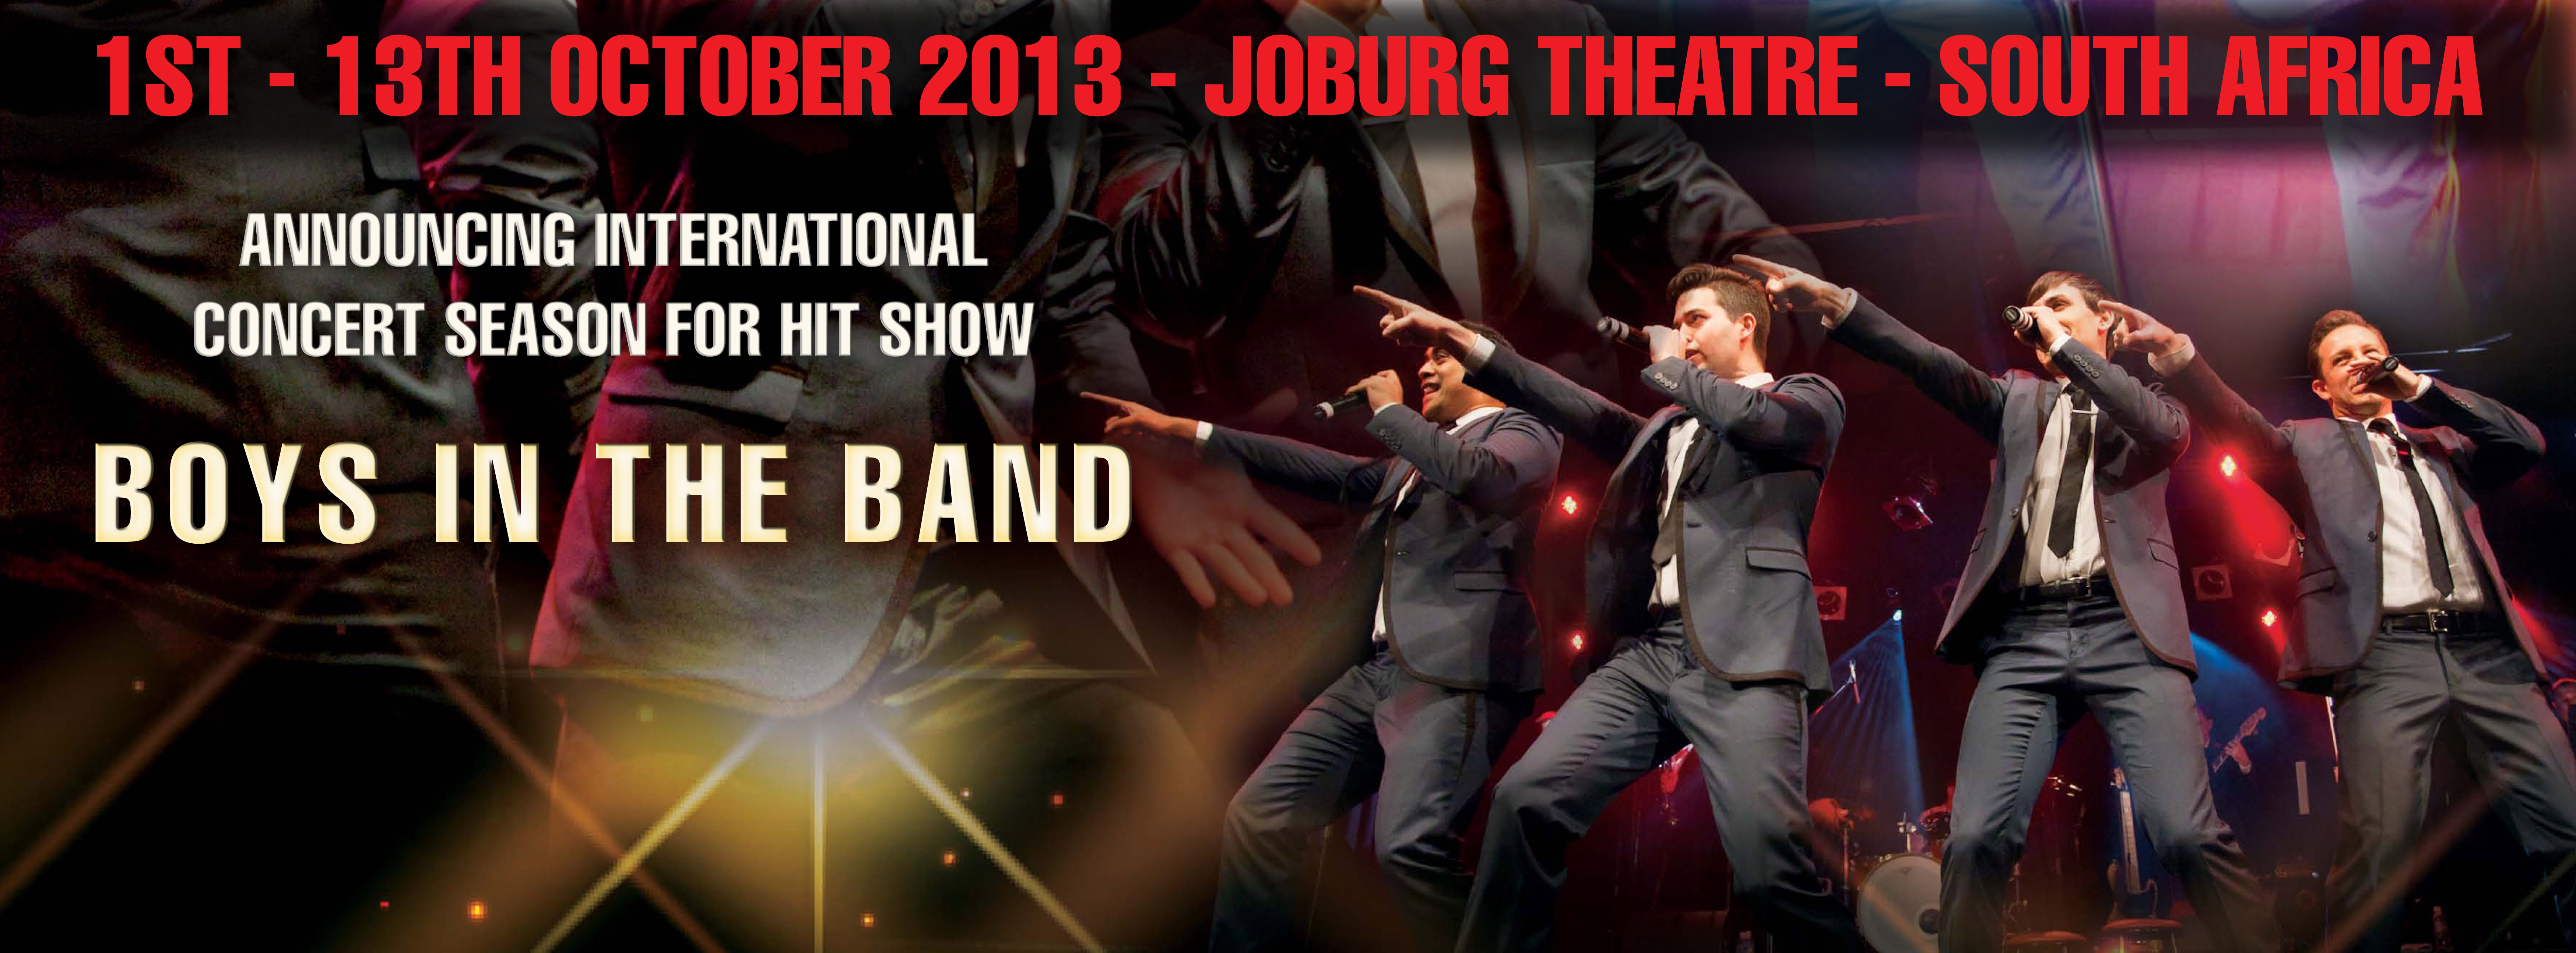 FacebookCOVER ART SthAfricaTour LowRes copy